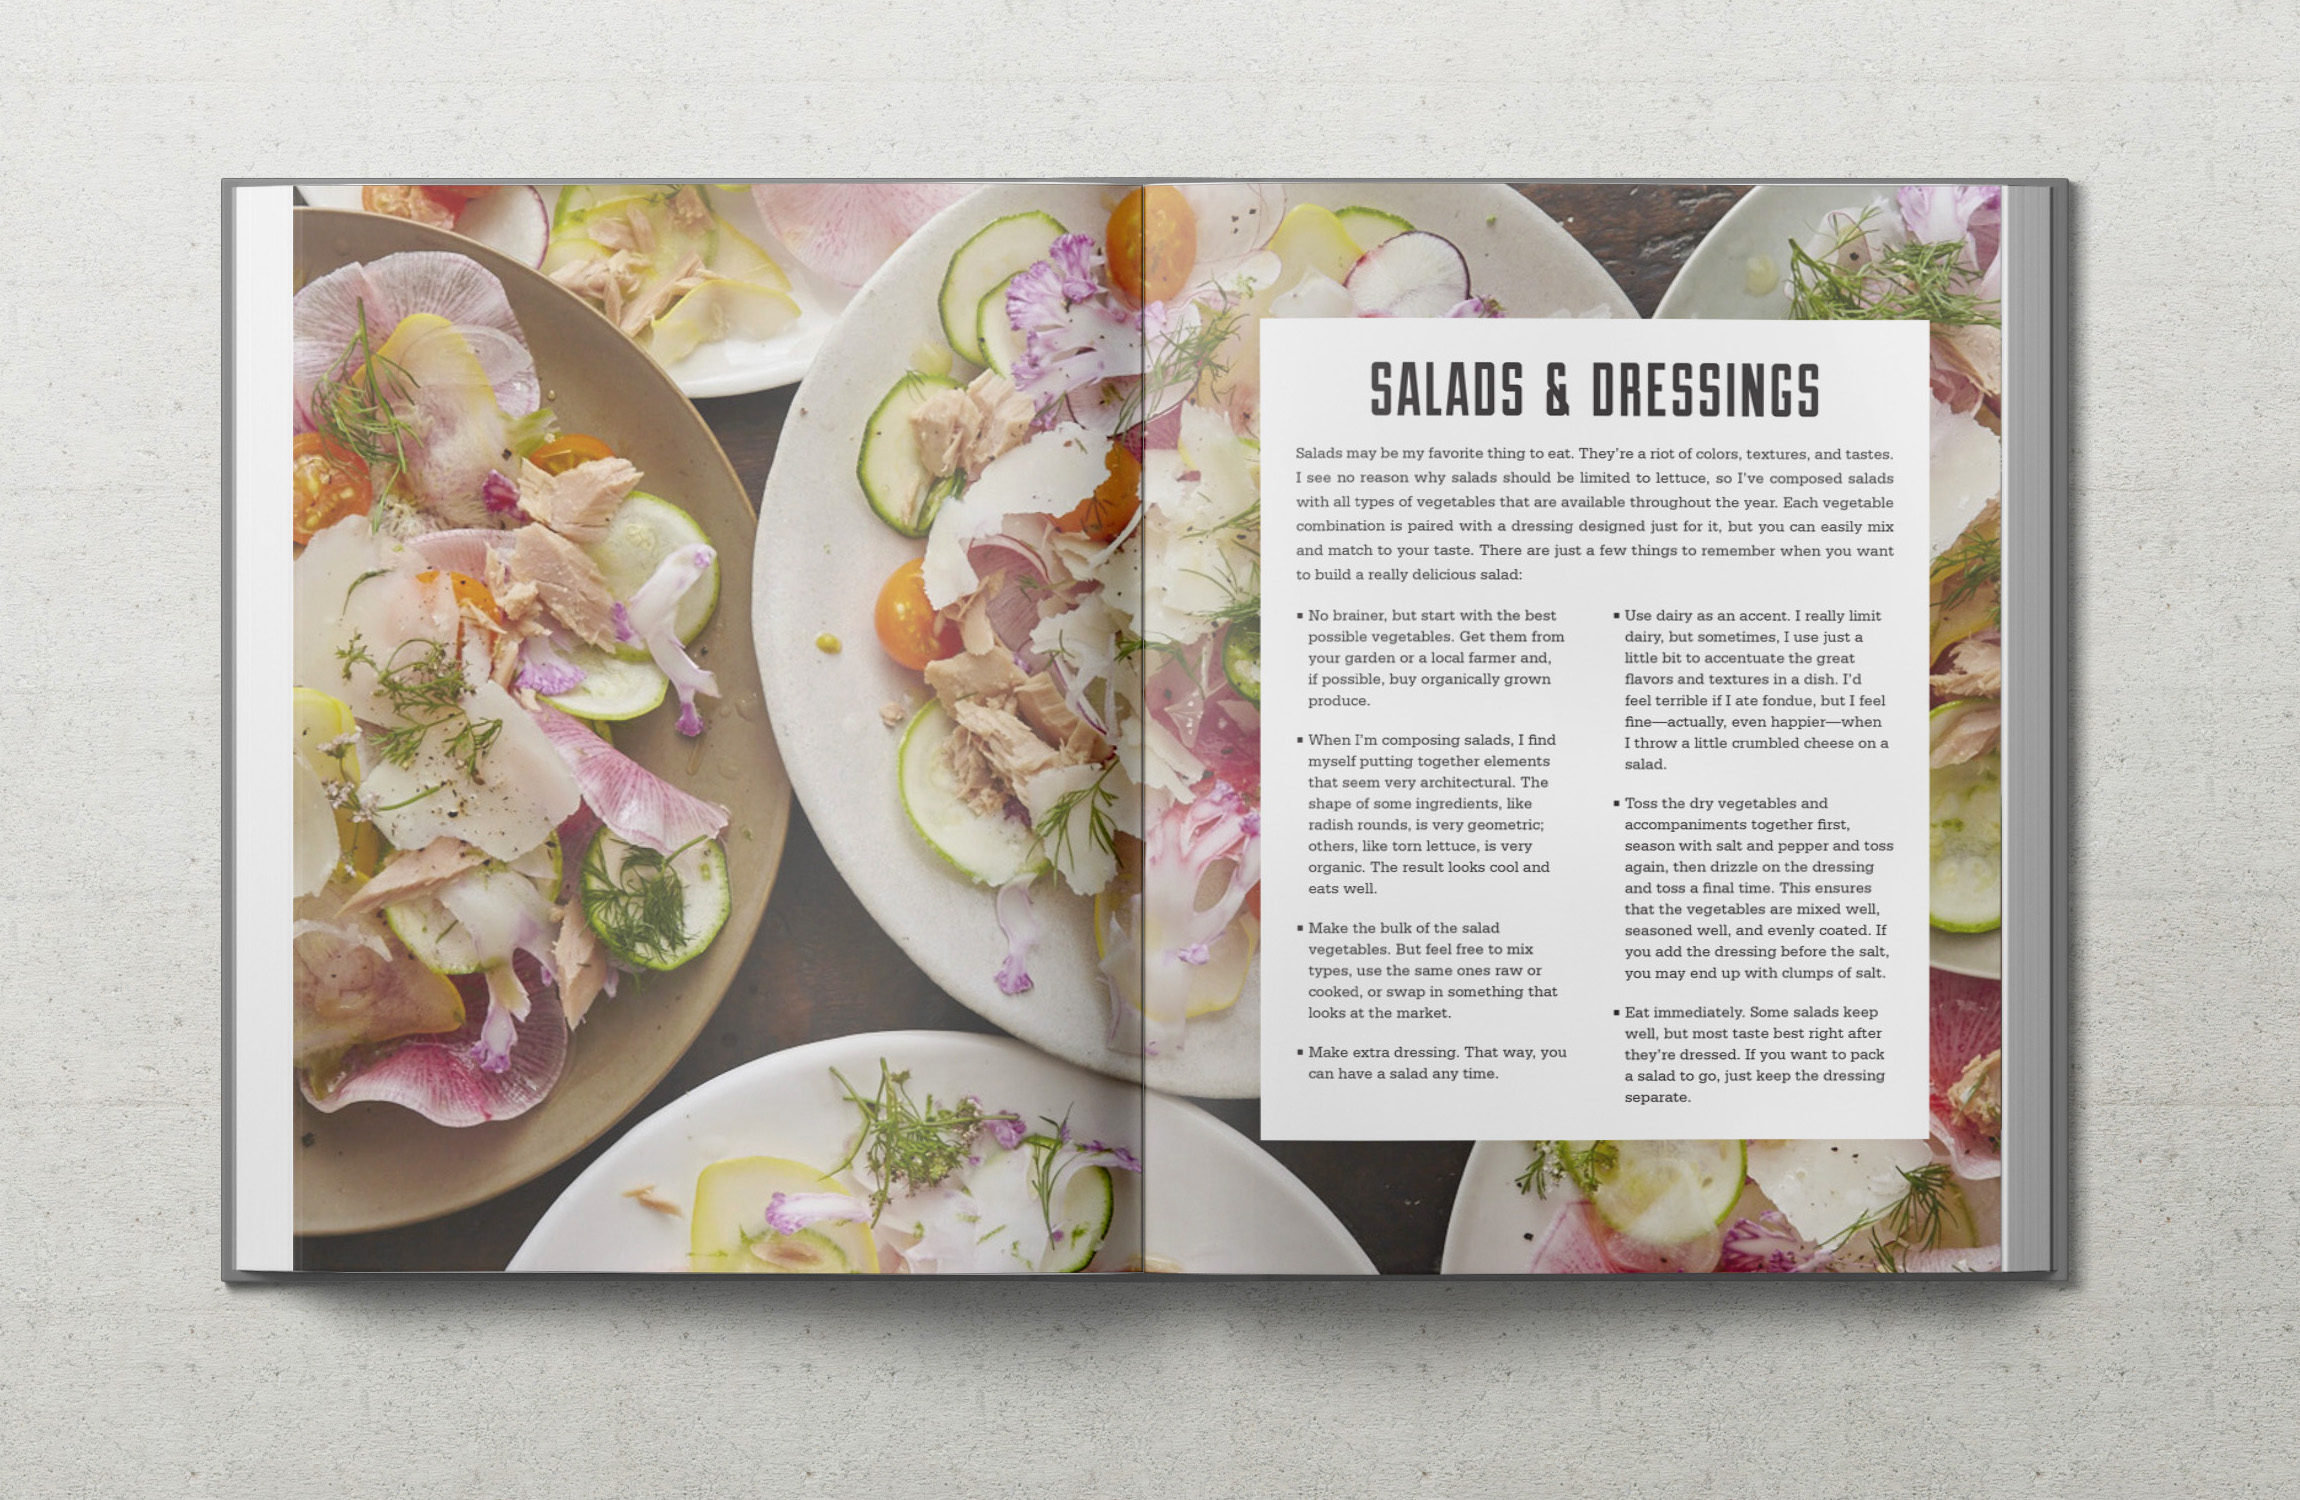 Real Food Heals intro about Salads and Dressings